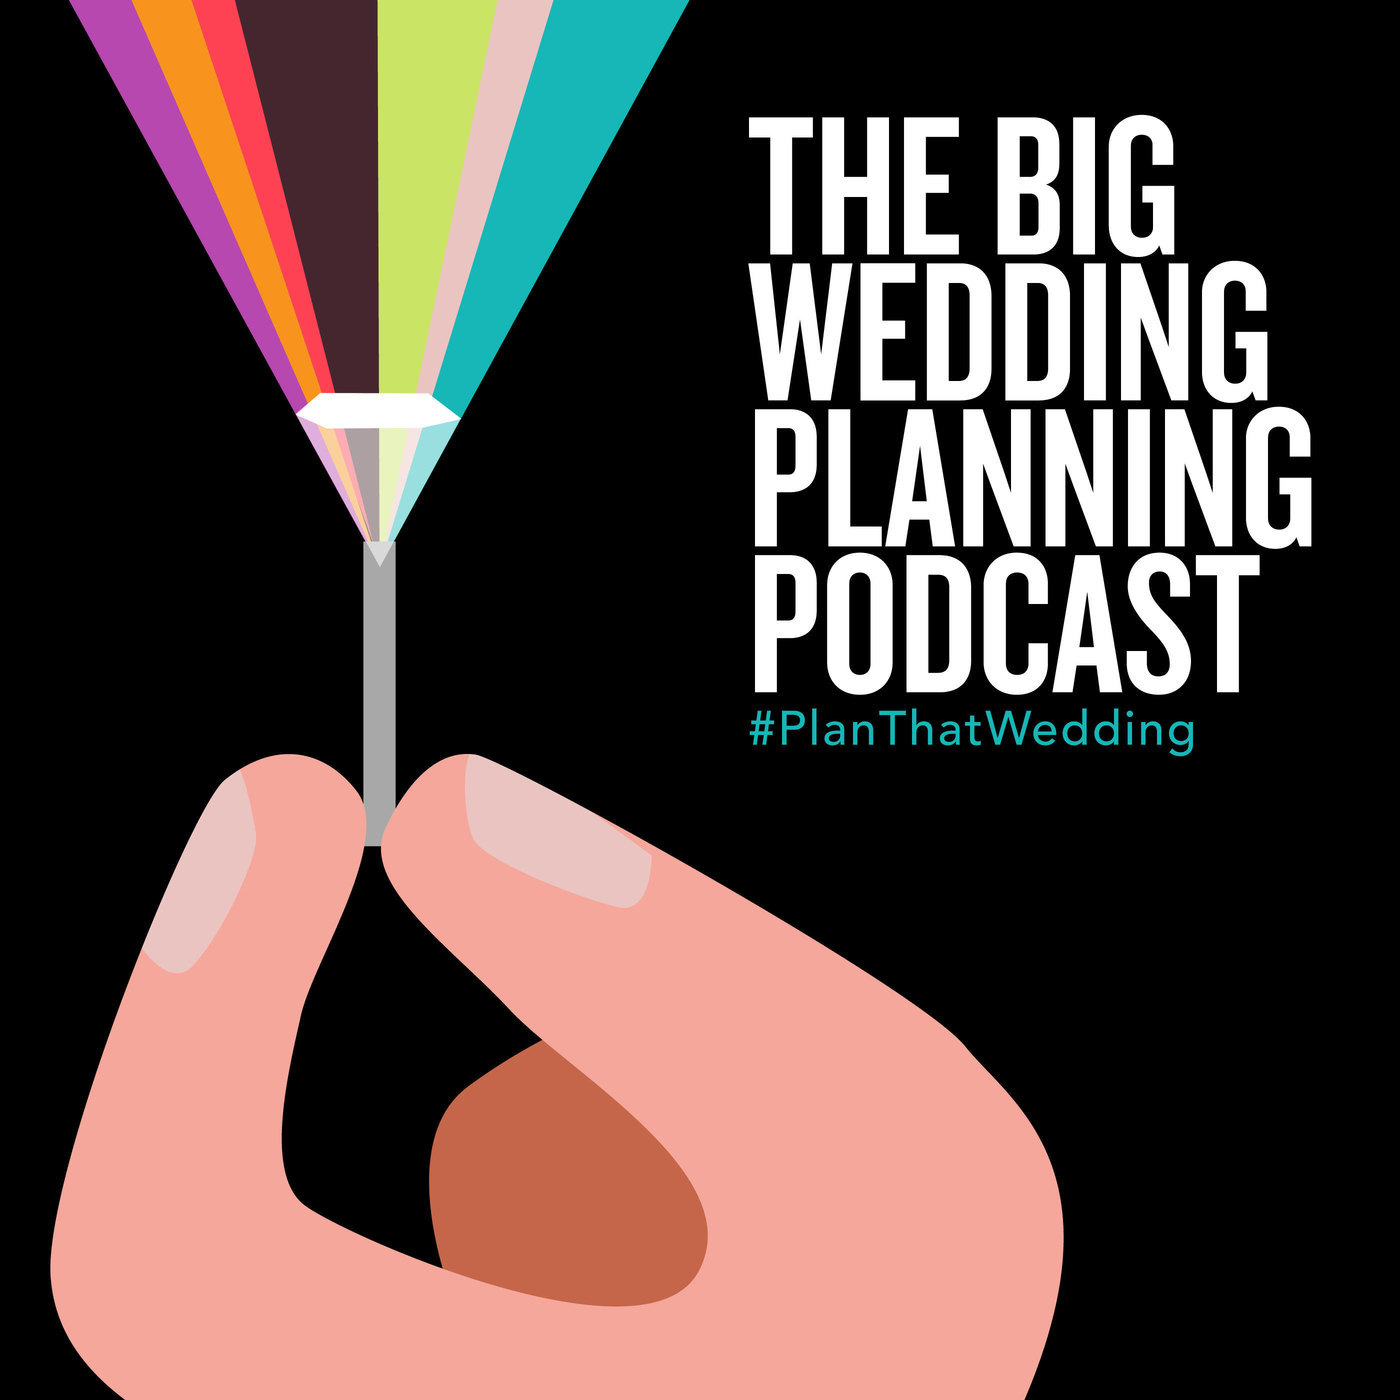 The Big Wedding Planning Podcast: #60 It's Our Anniversary!